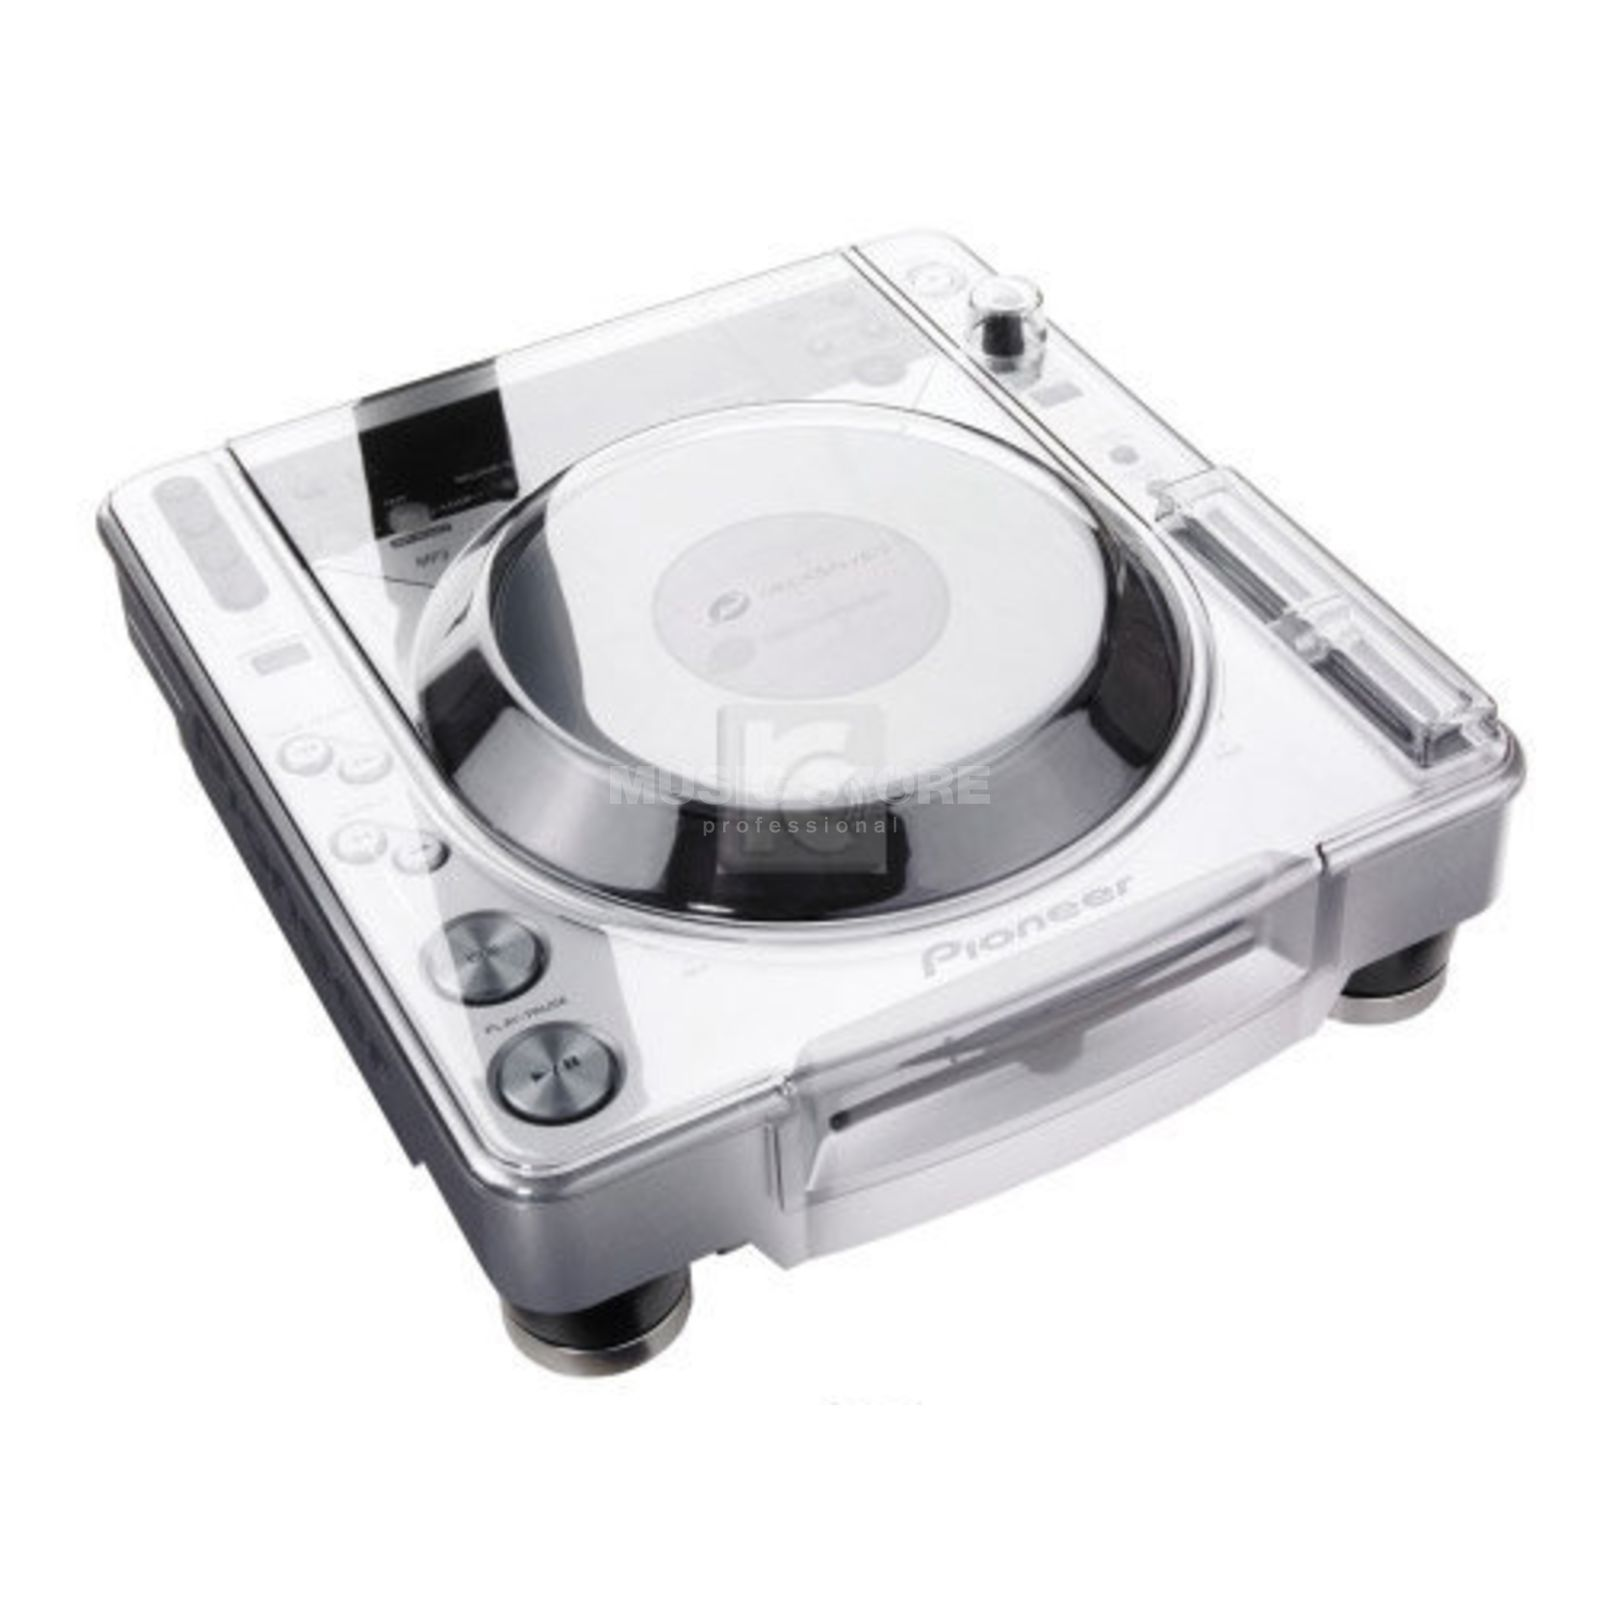 Decksaver Dust Cover CDJ 800  Product Image